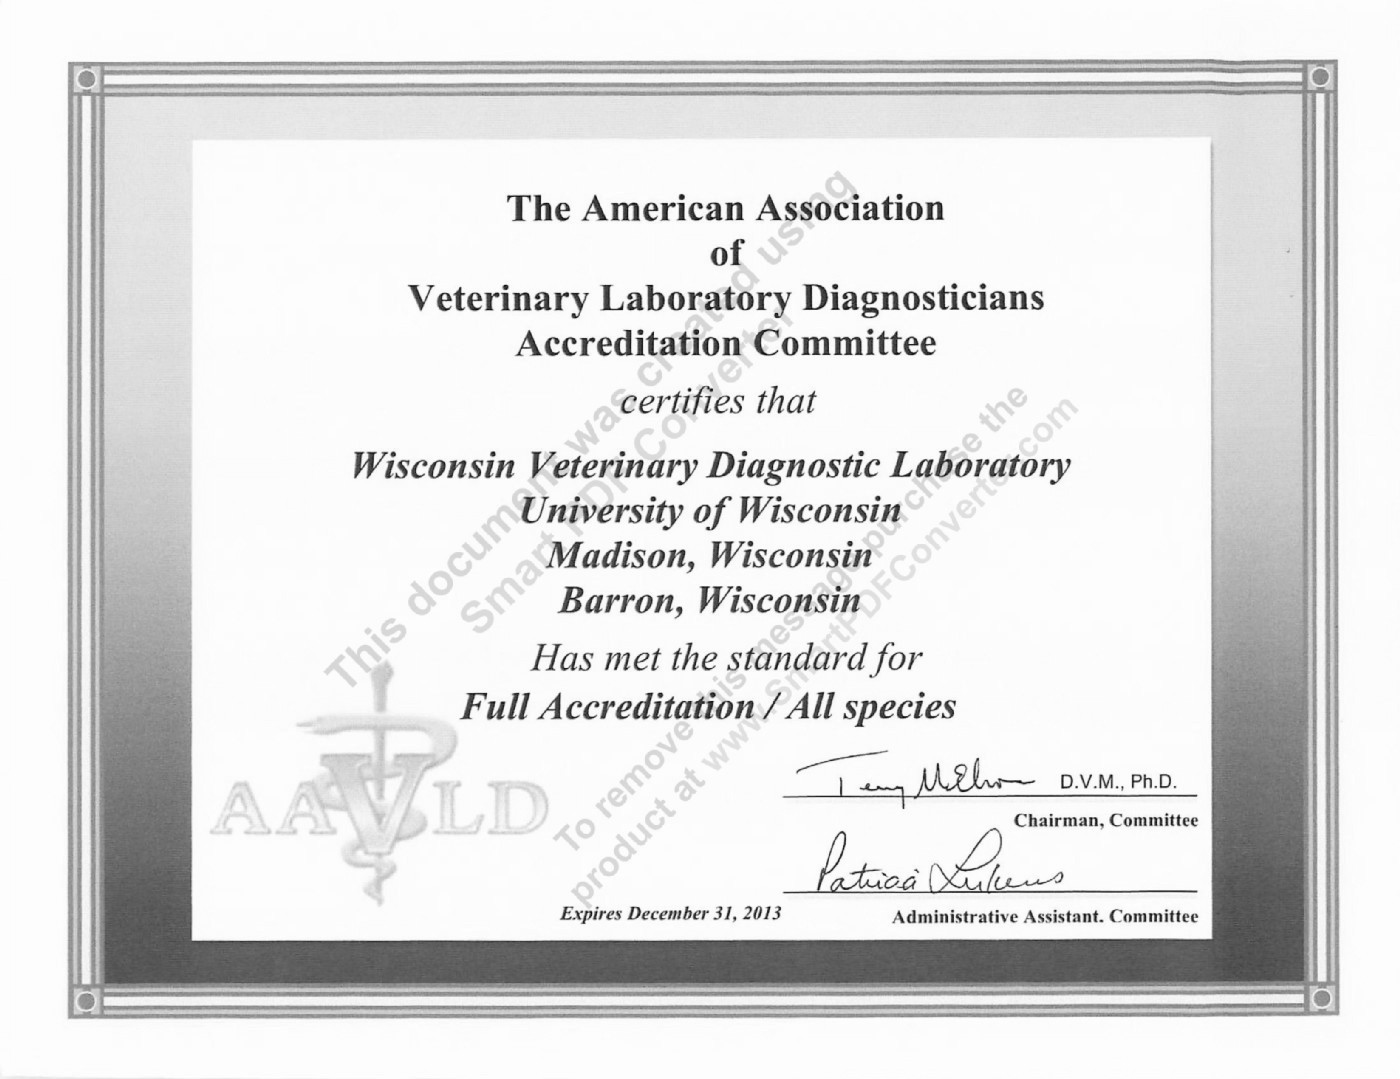 Wisconsin veterinary diagnostic laboratory wi accreditation certificate 1betcityfo Image collections